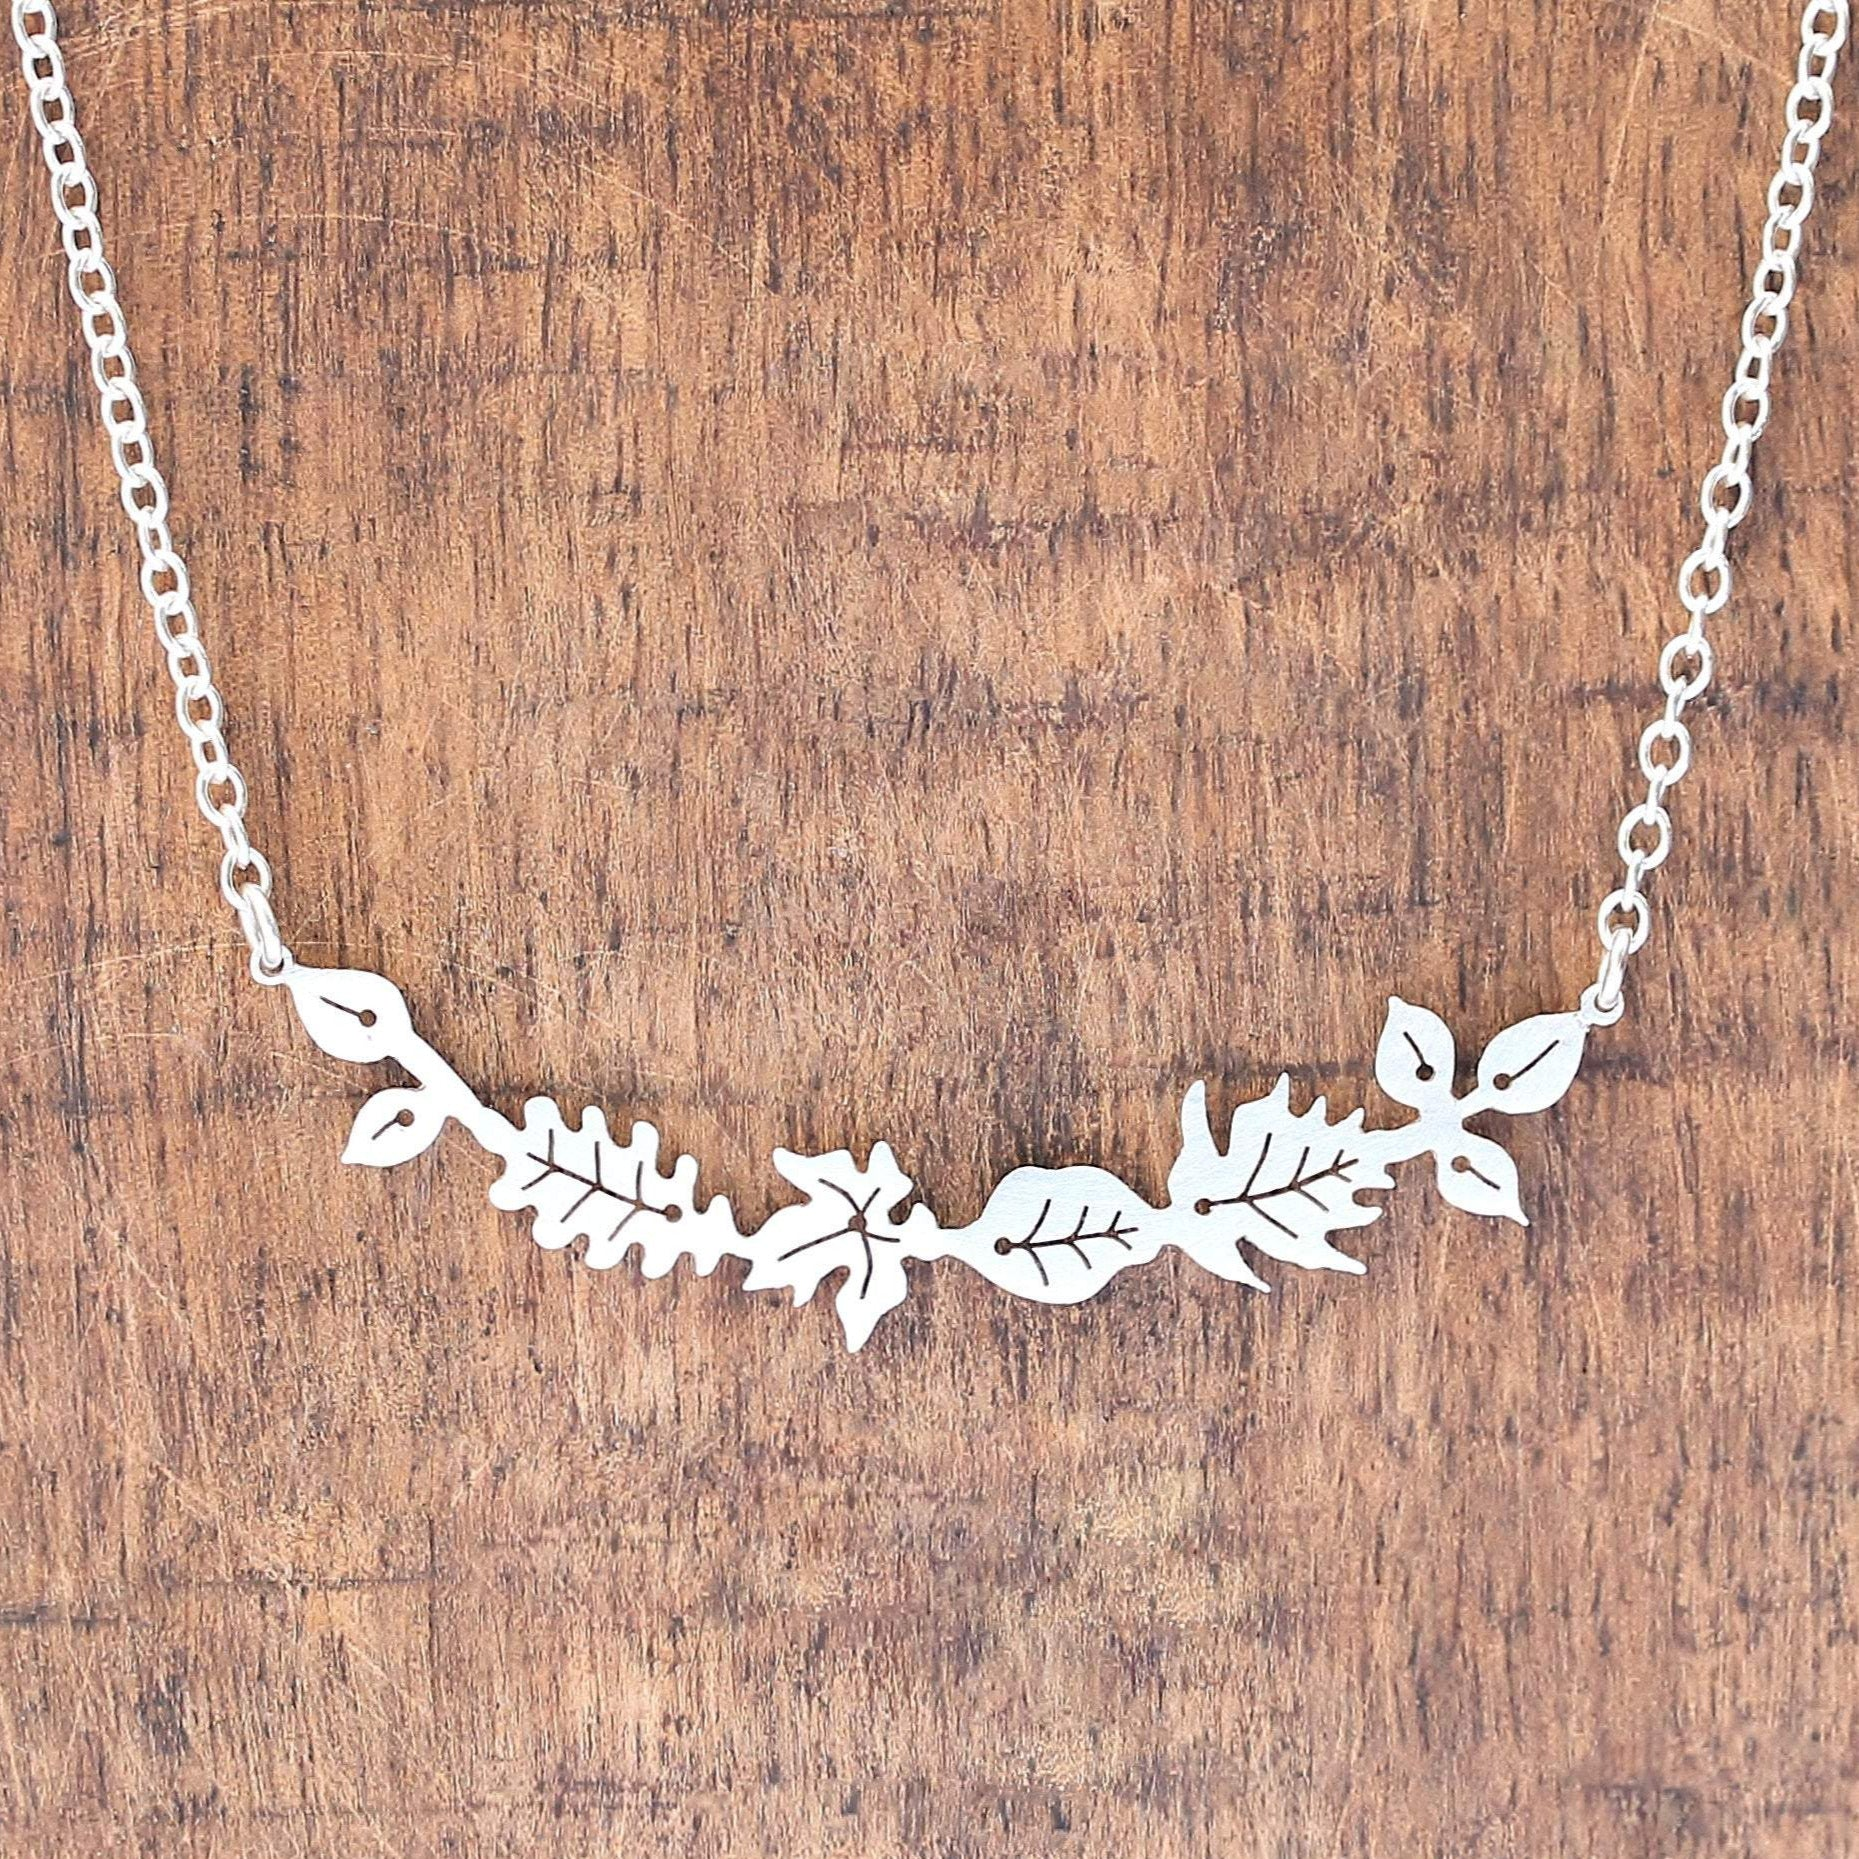 Dancing Leaves Bar Necklace